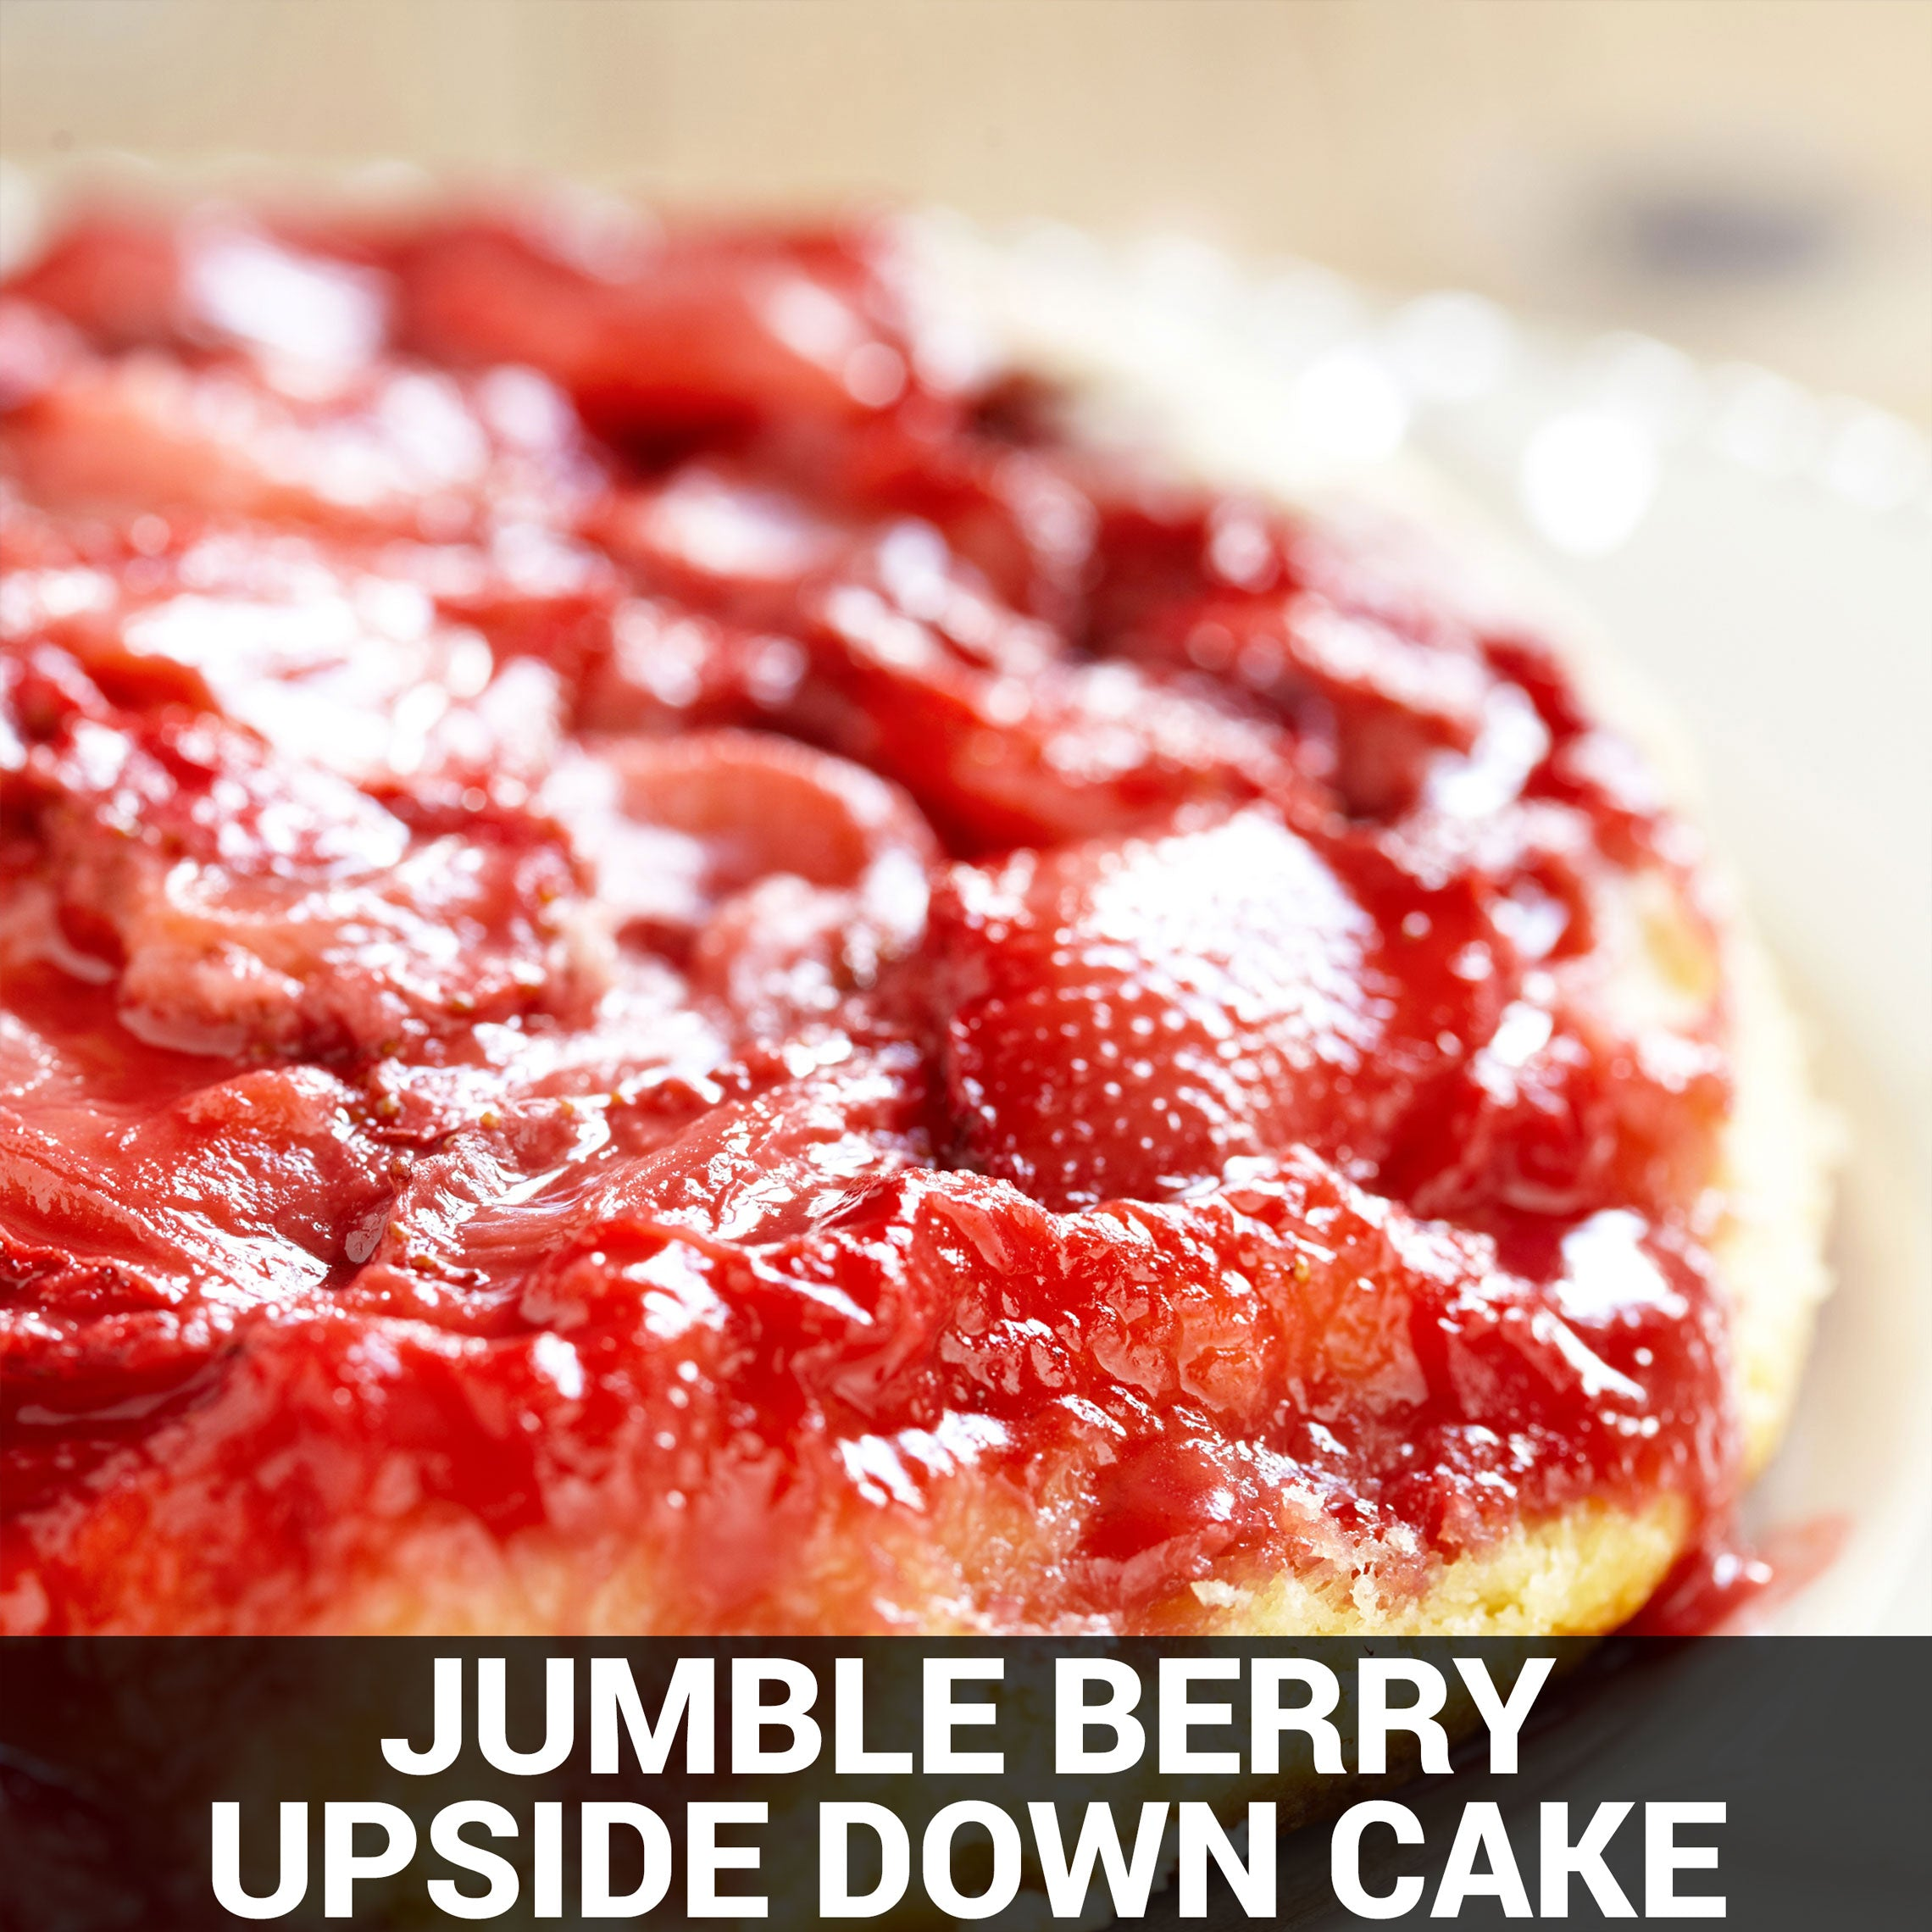 Jumble Berry Upside Down Cake Recipe - Foods Alive